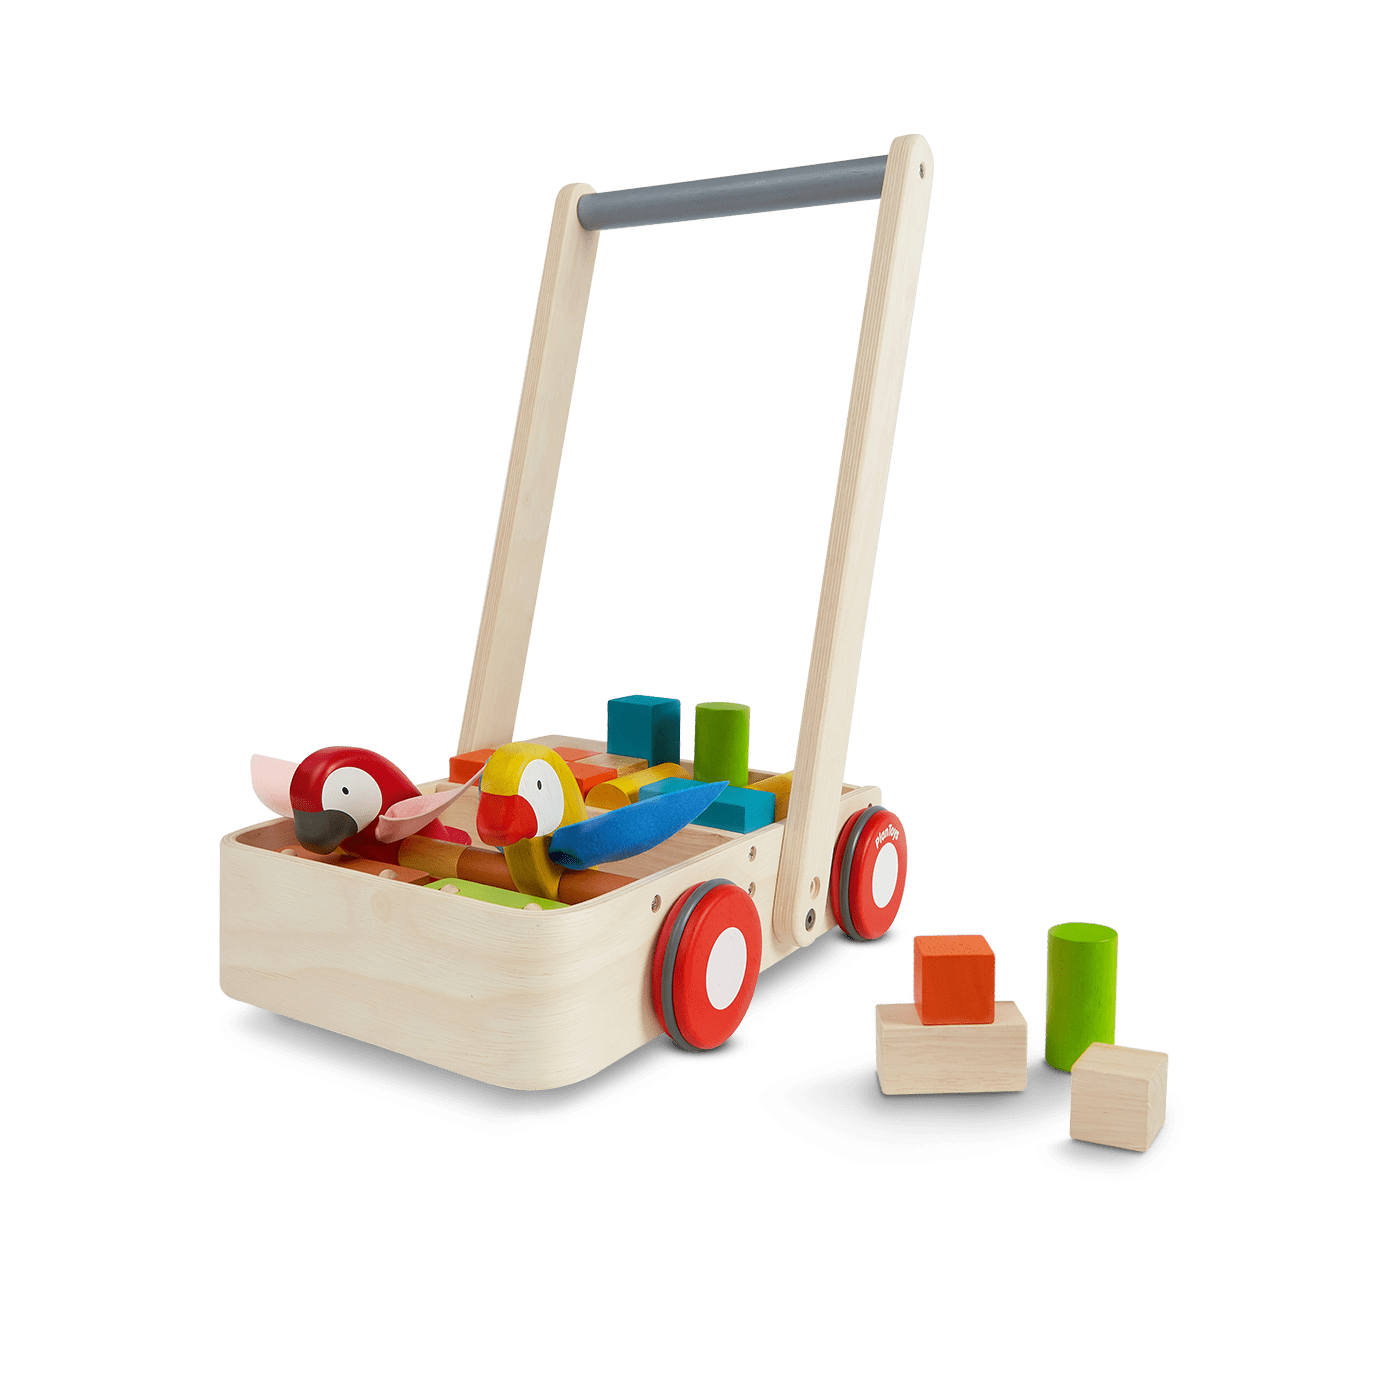 5176_PlanToys_BIRD_WALKER_Push_and_Pull_Gross_Motor_Coordination_Auditory_Cause_and_Effect_12m_Wooden_toys_Education_toys_Safety_Toys_Non-toxic_0.png